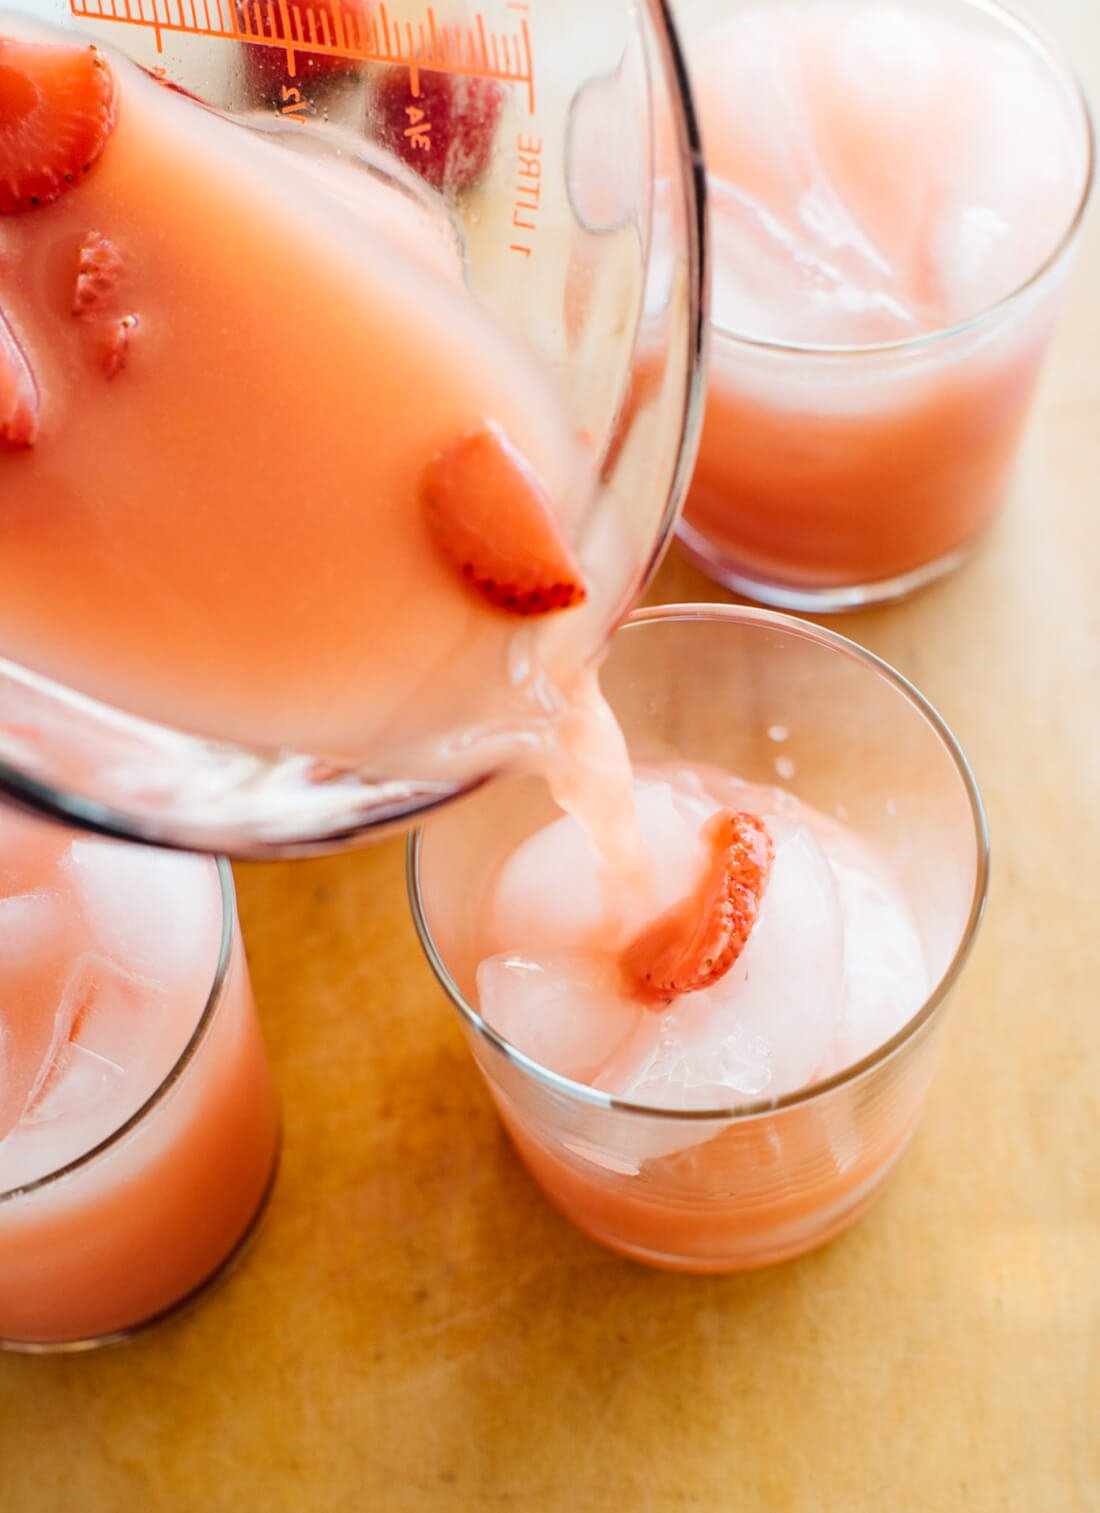 Pouring pink drink into glass